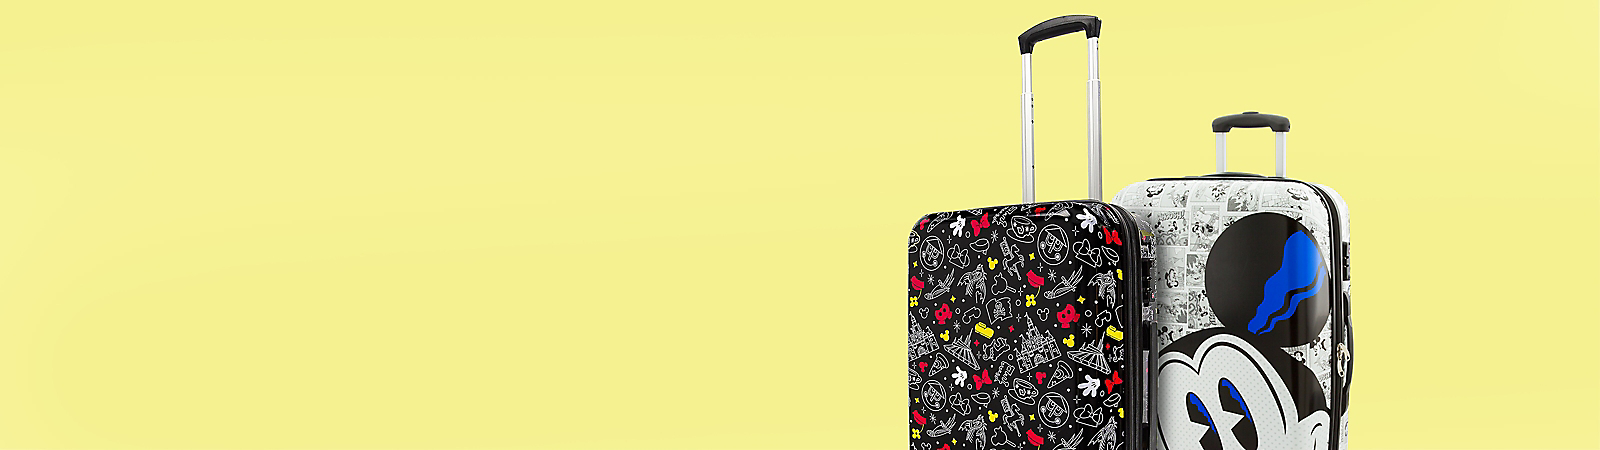 Women's Luggage & Travel